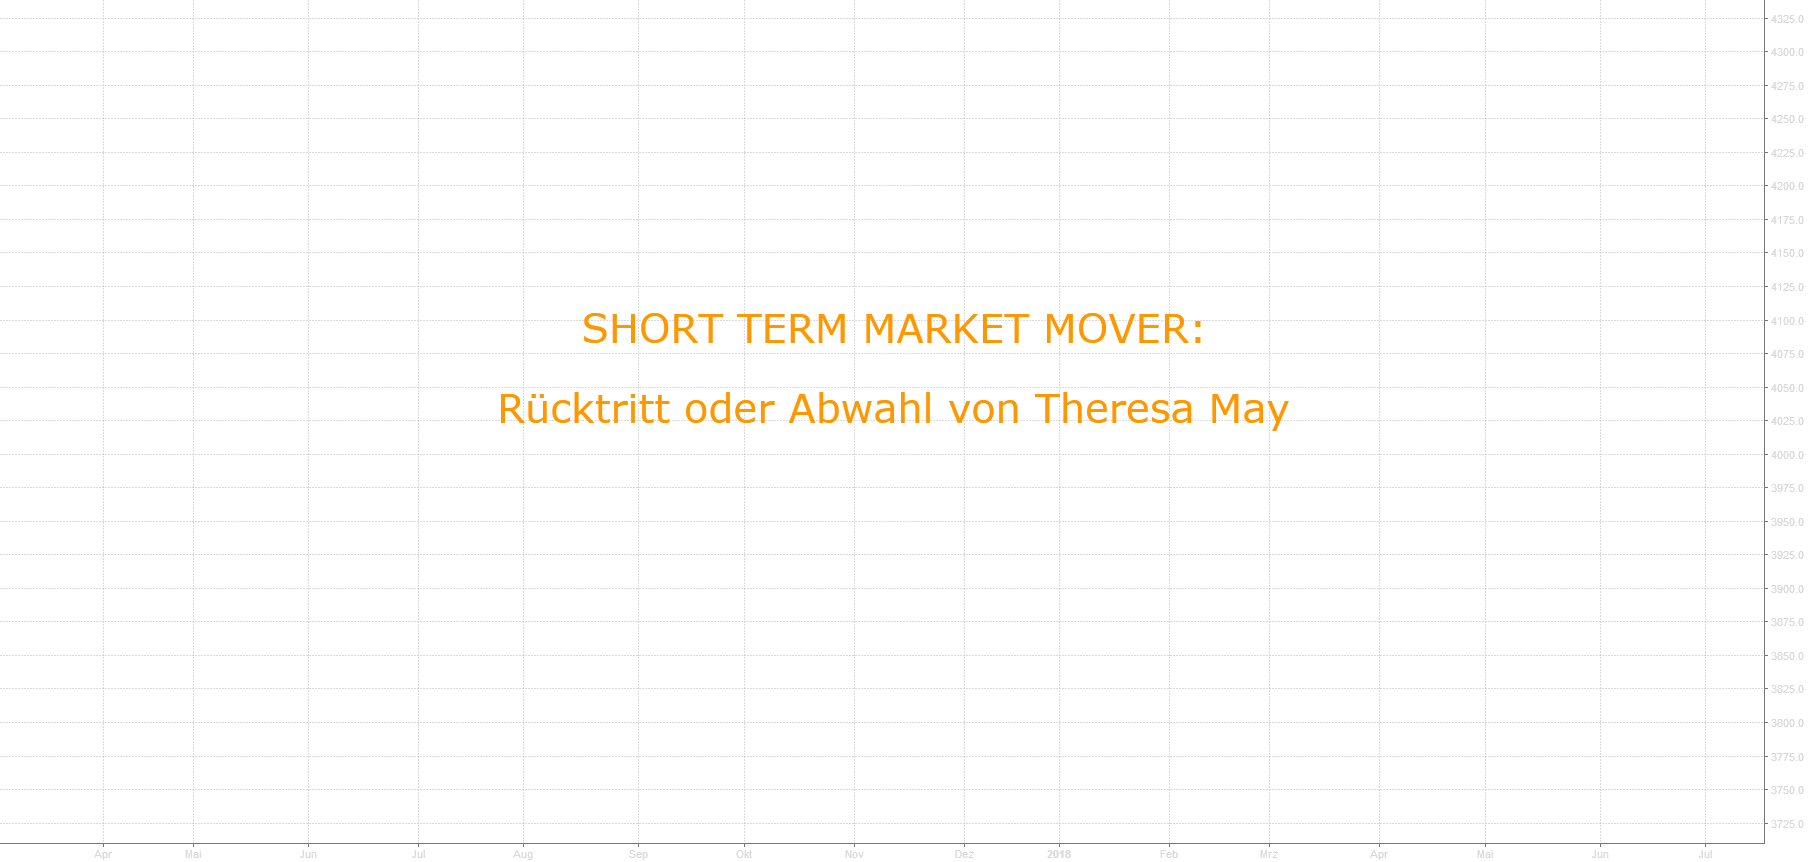 Political View / Sentiment View: Short Term Risk Theresa May